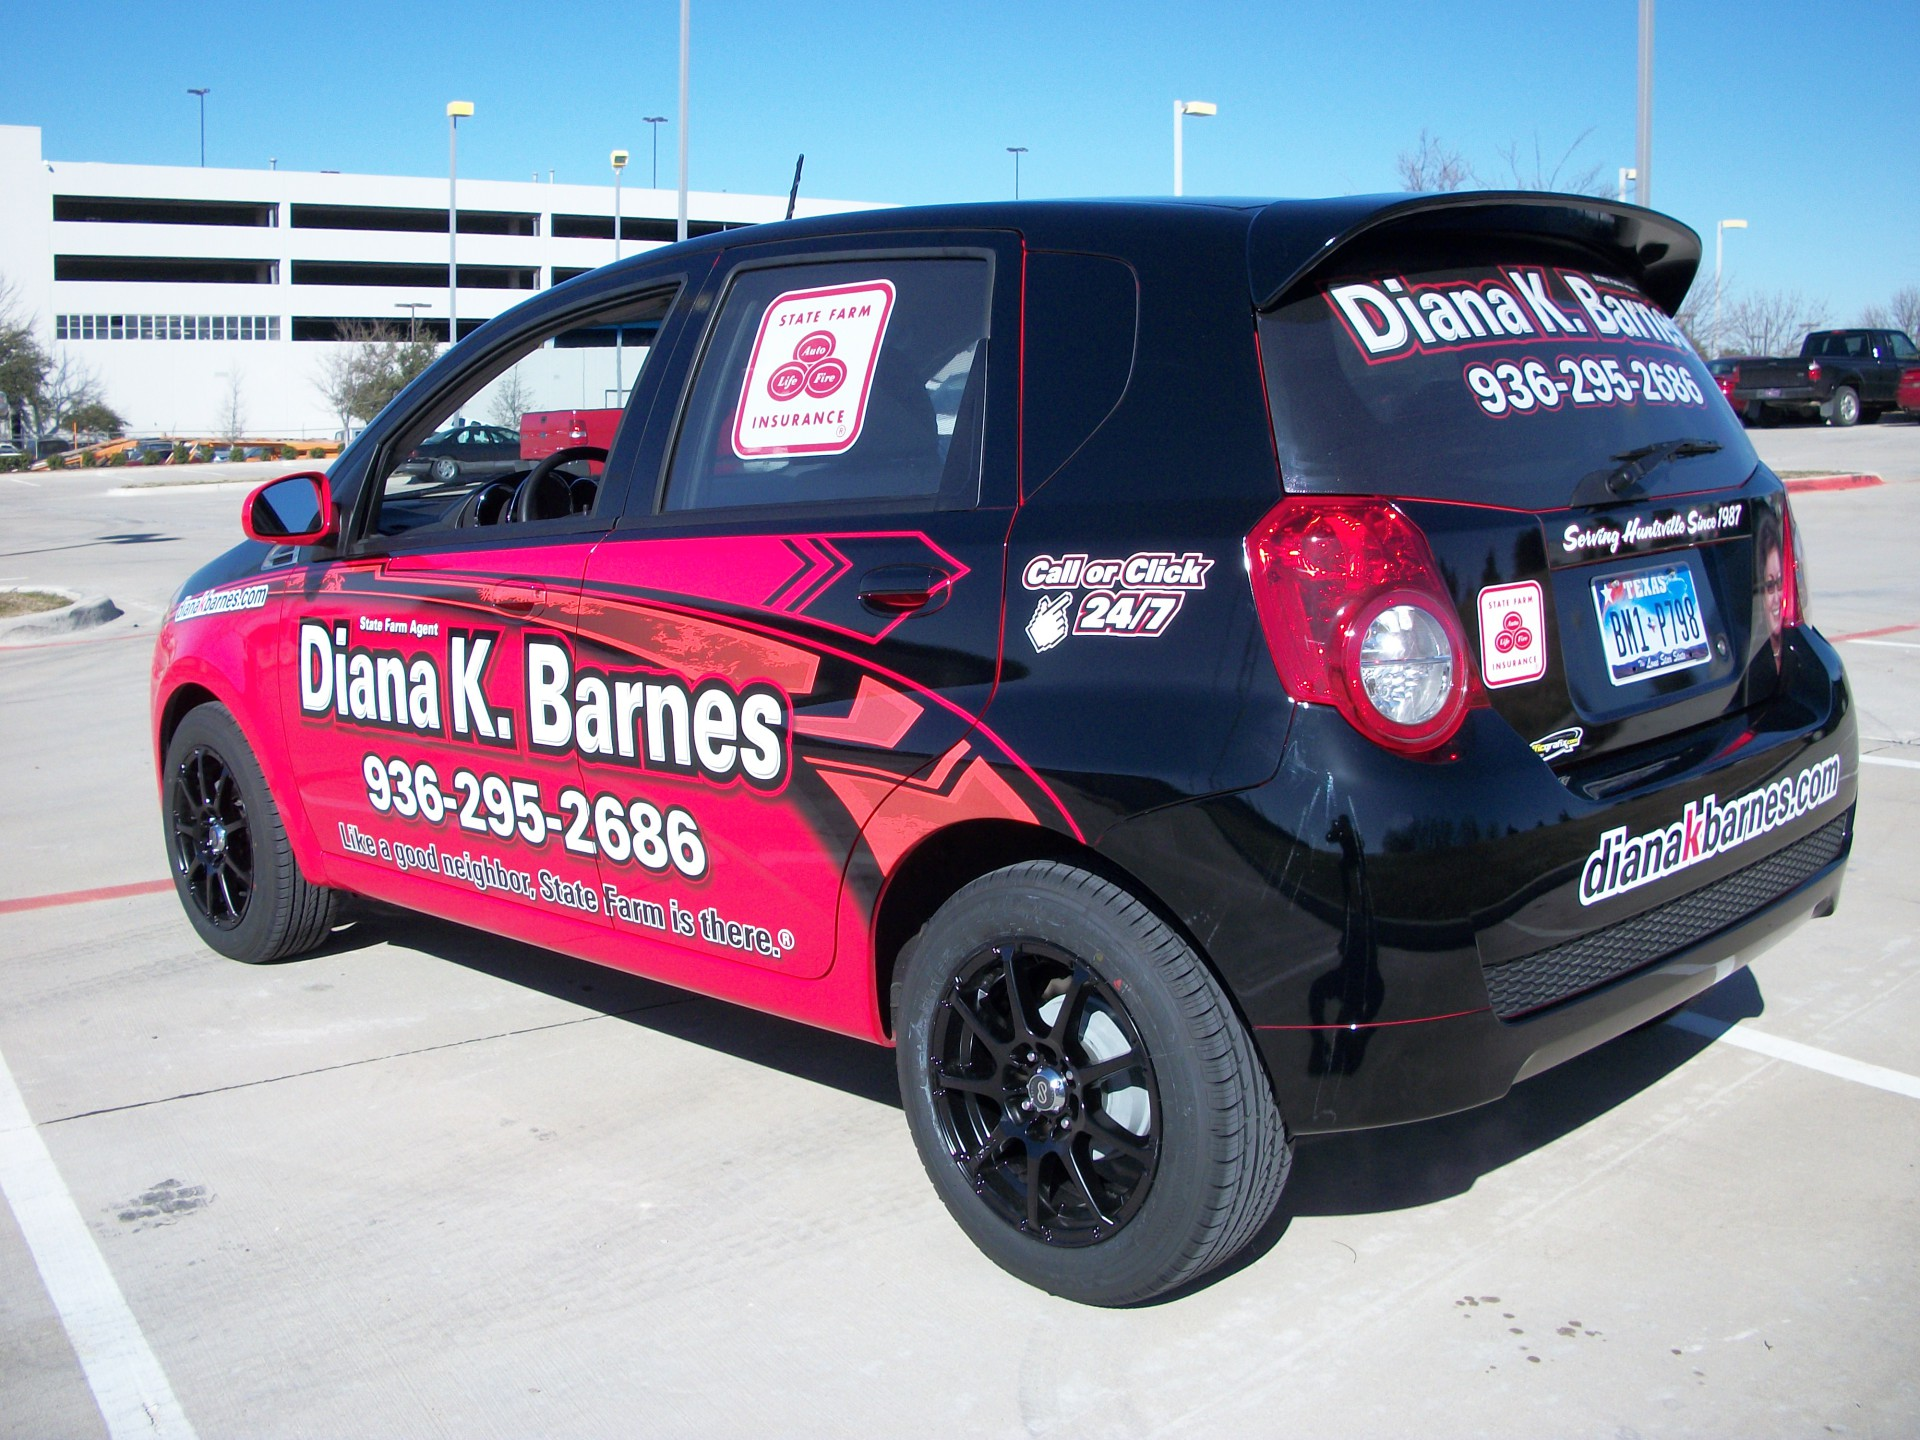 State Farm Agent Diana K. Barnes, State Farm Vehicle Wraps, vehicle wraps dallas tx